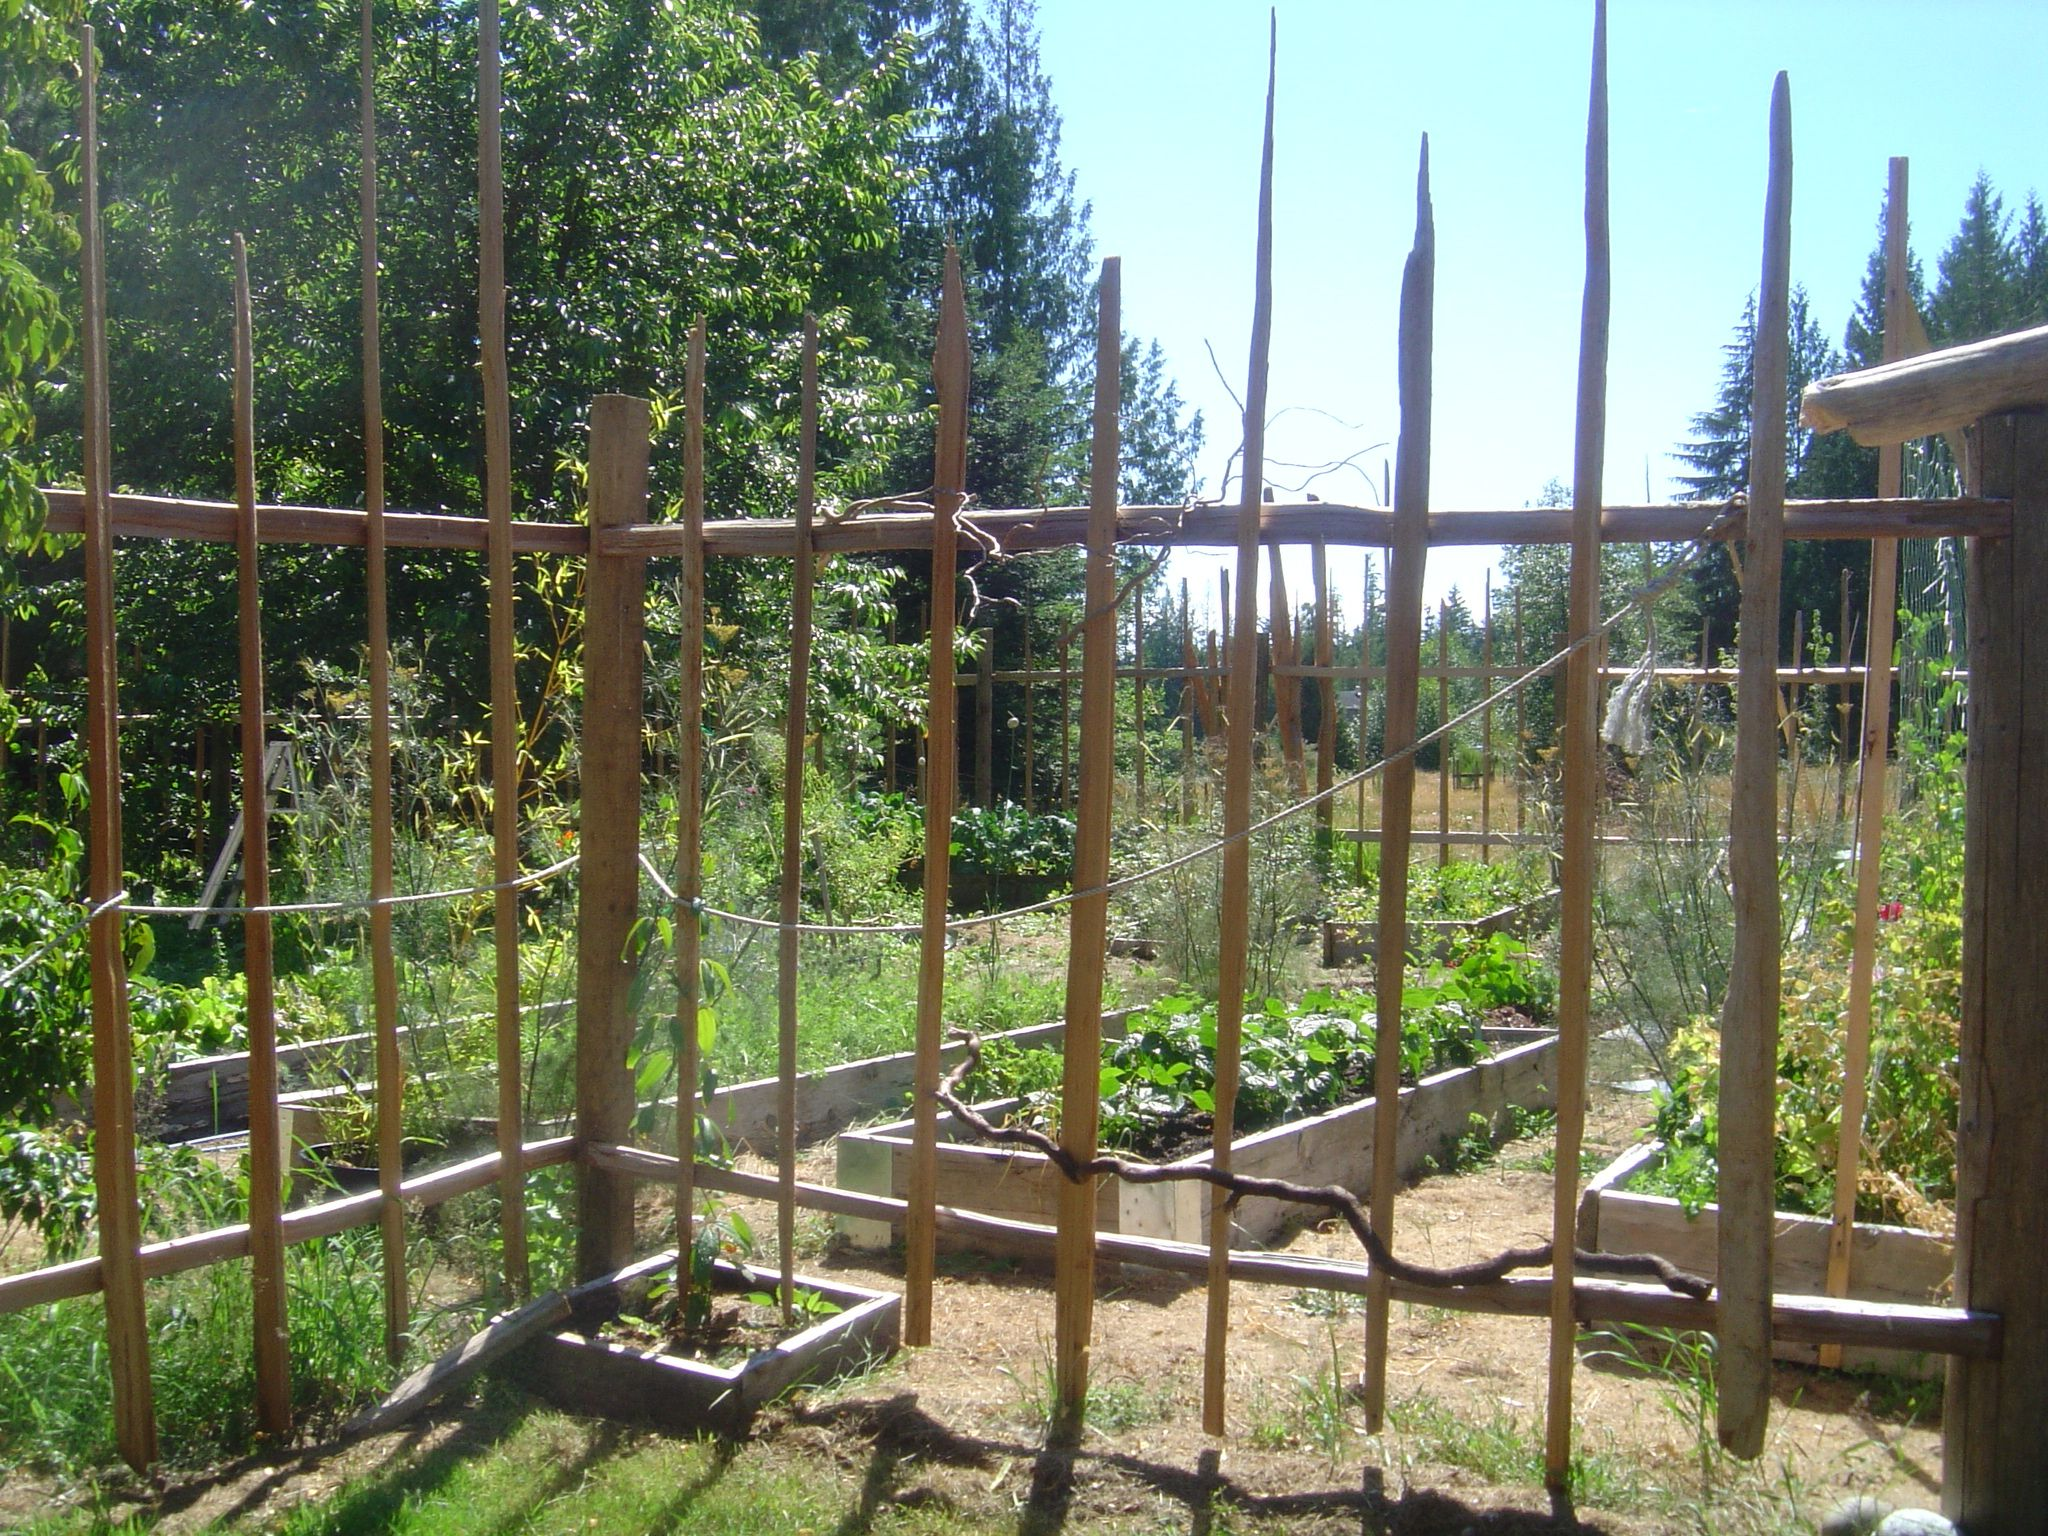 Diy Garden Deer Fence And How To Build A Deer Proof Funky Garden